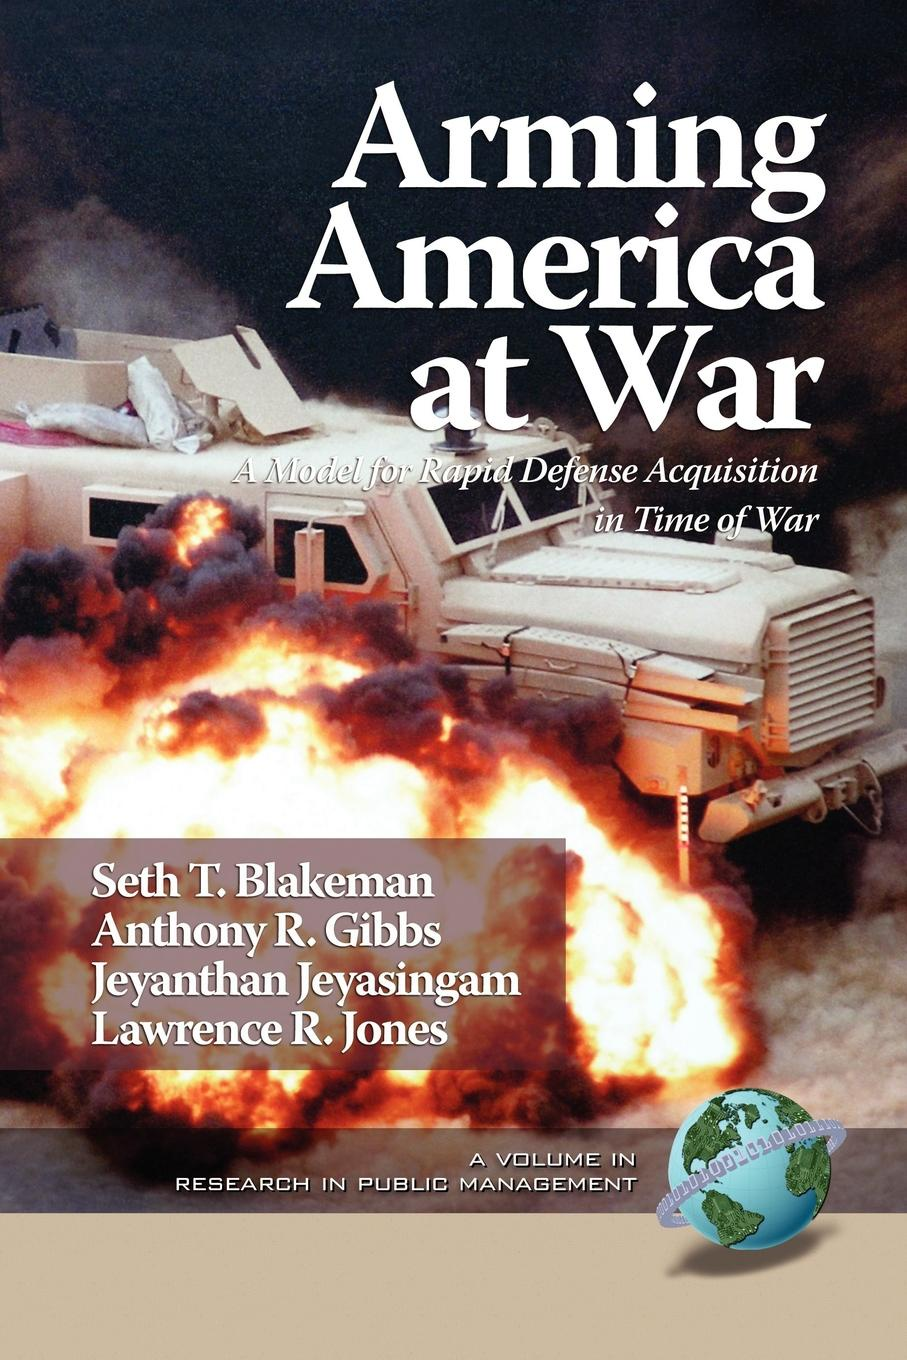 Seth T. Blakeman, Anthony R. Gibbs, Jeyanthan Jeyasingam Arming America at War a Model for Rapid Defense Acquisition in Time of War (PB) ad acquisition module 8 channel 24 bit adc conversion stm32f103c8t6 mcu development board